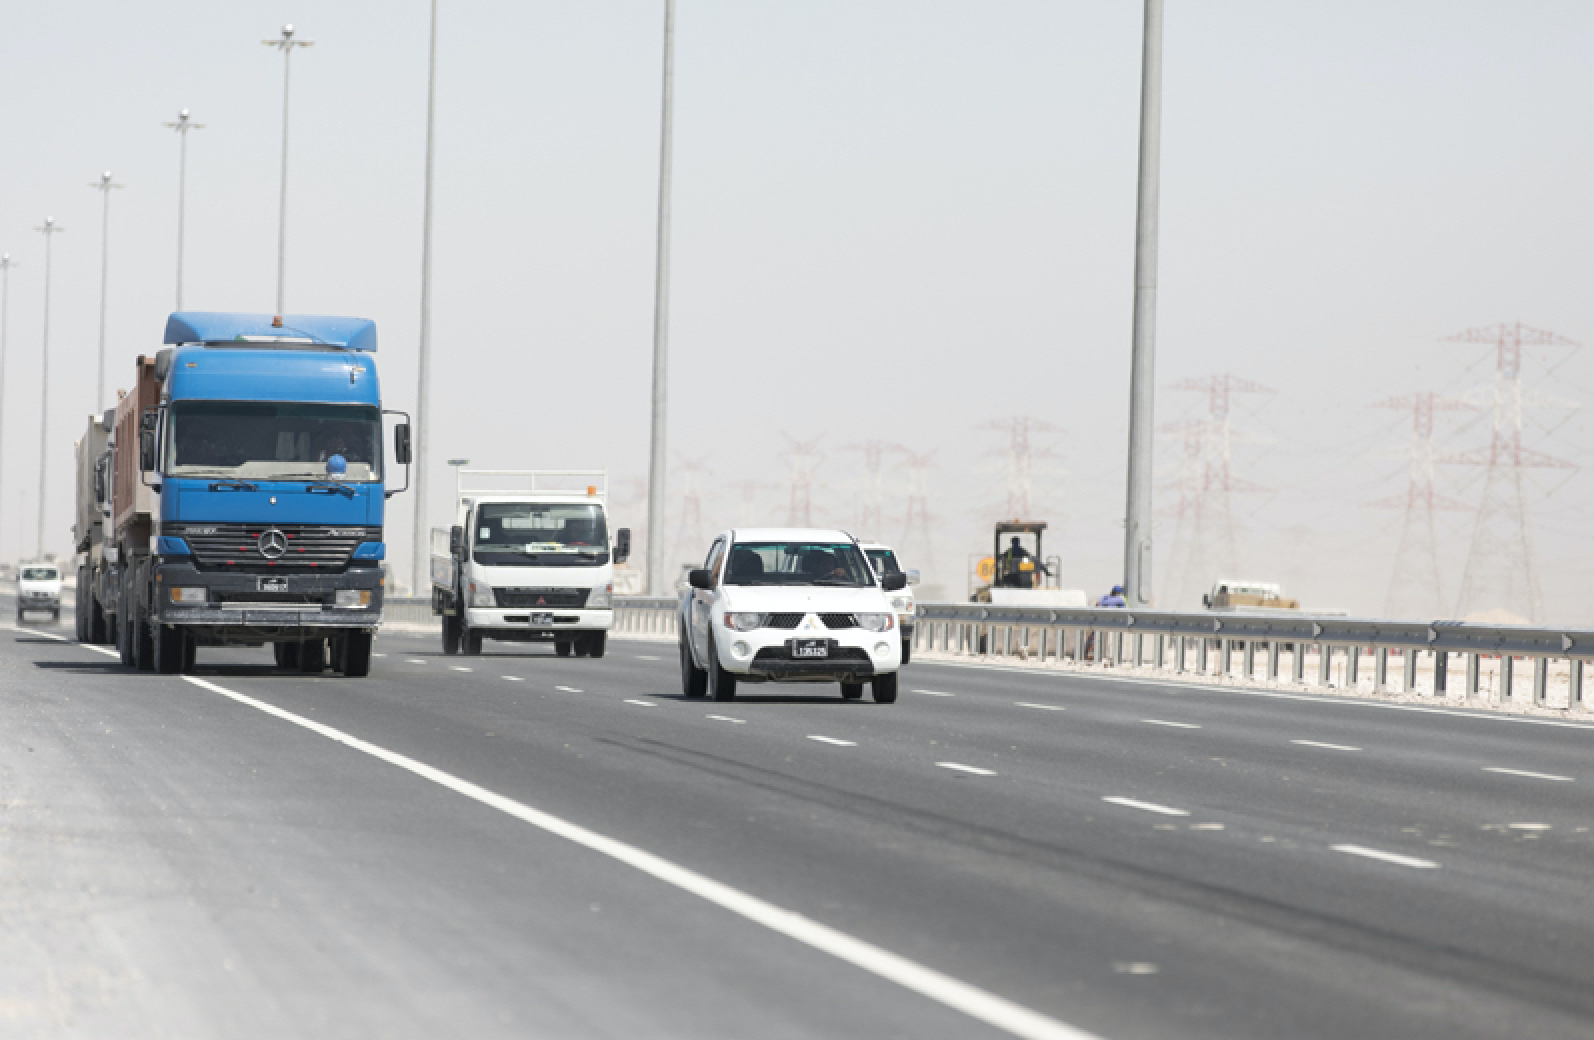 Ashghal opens 37km of Orbital Highway project to traffic